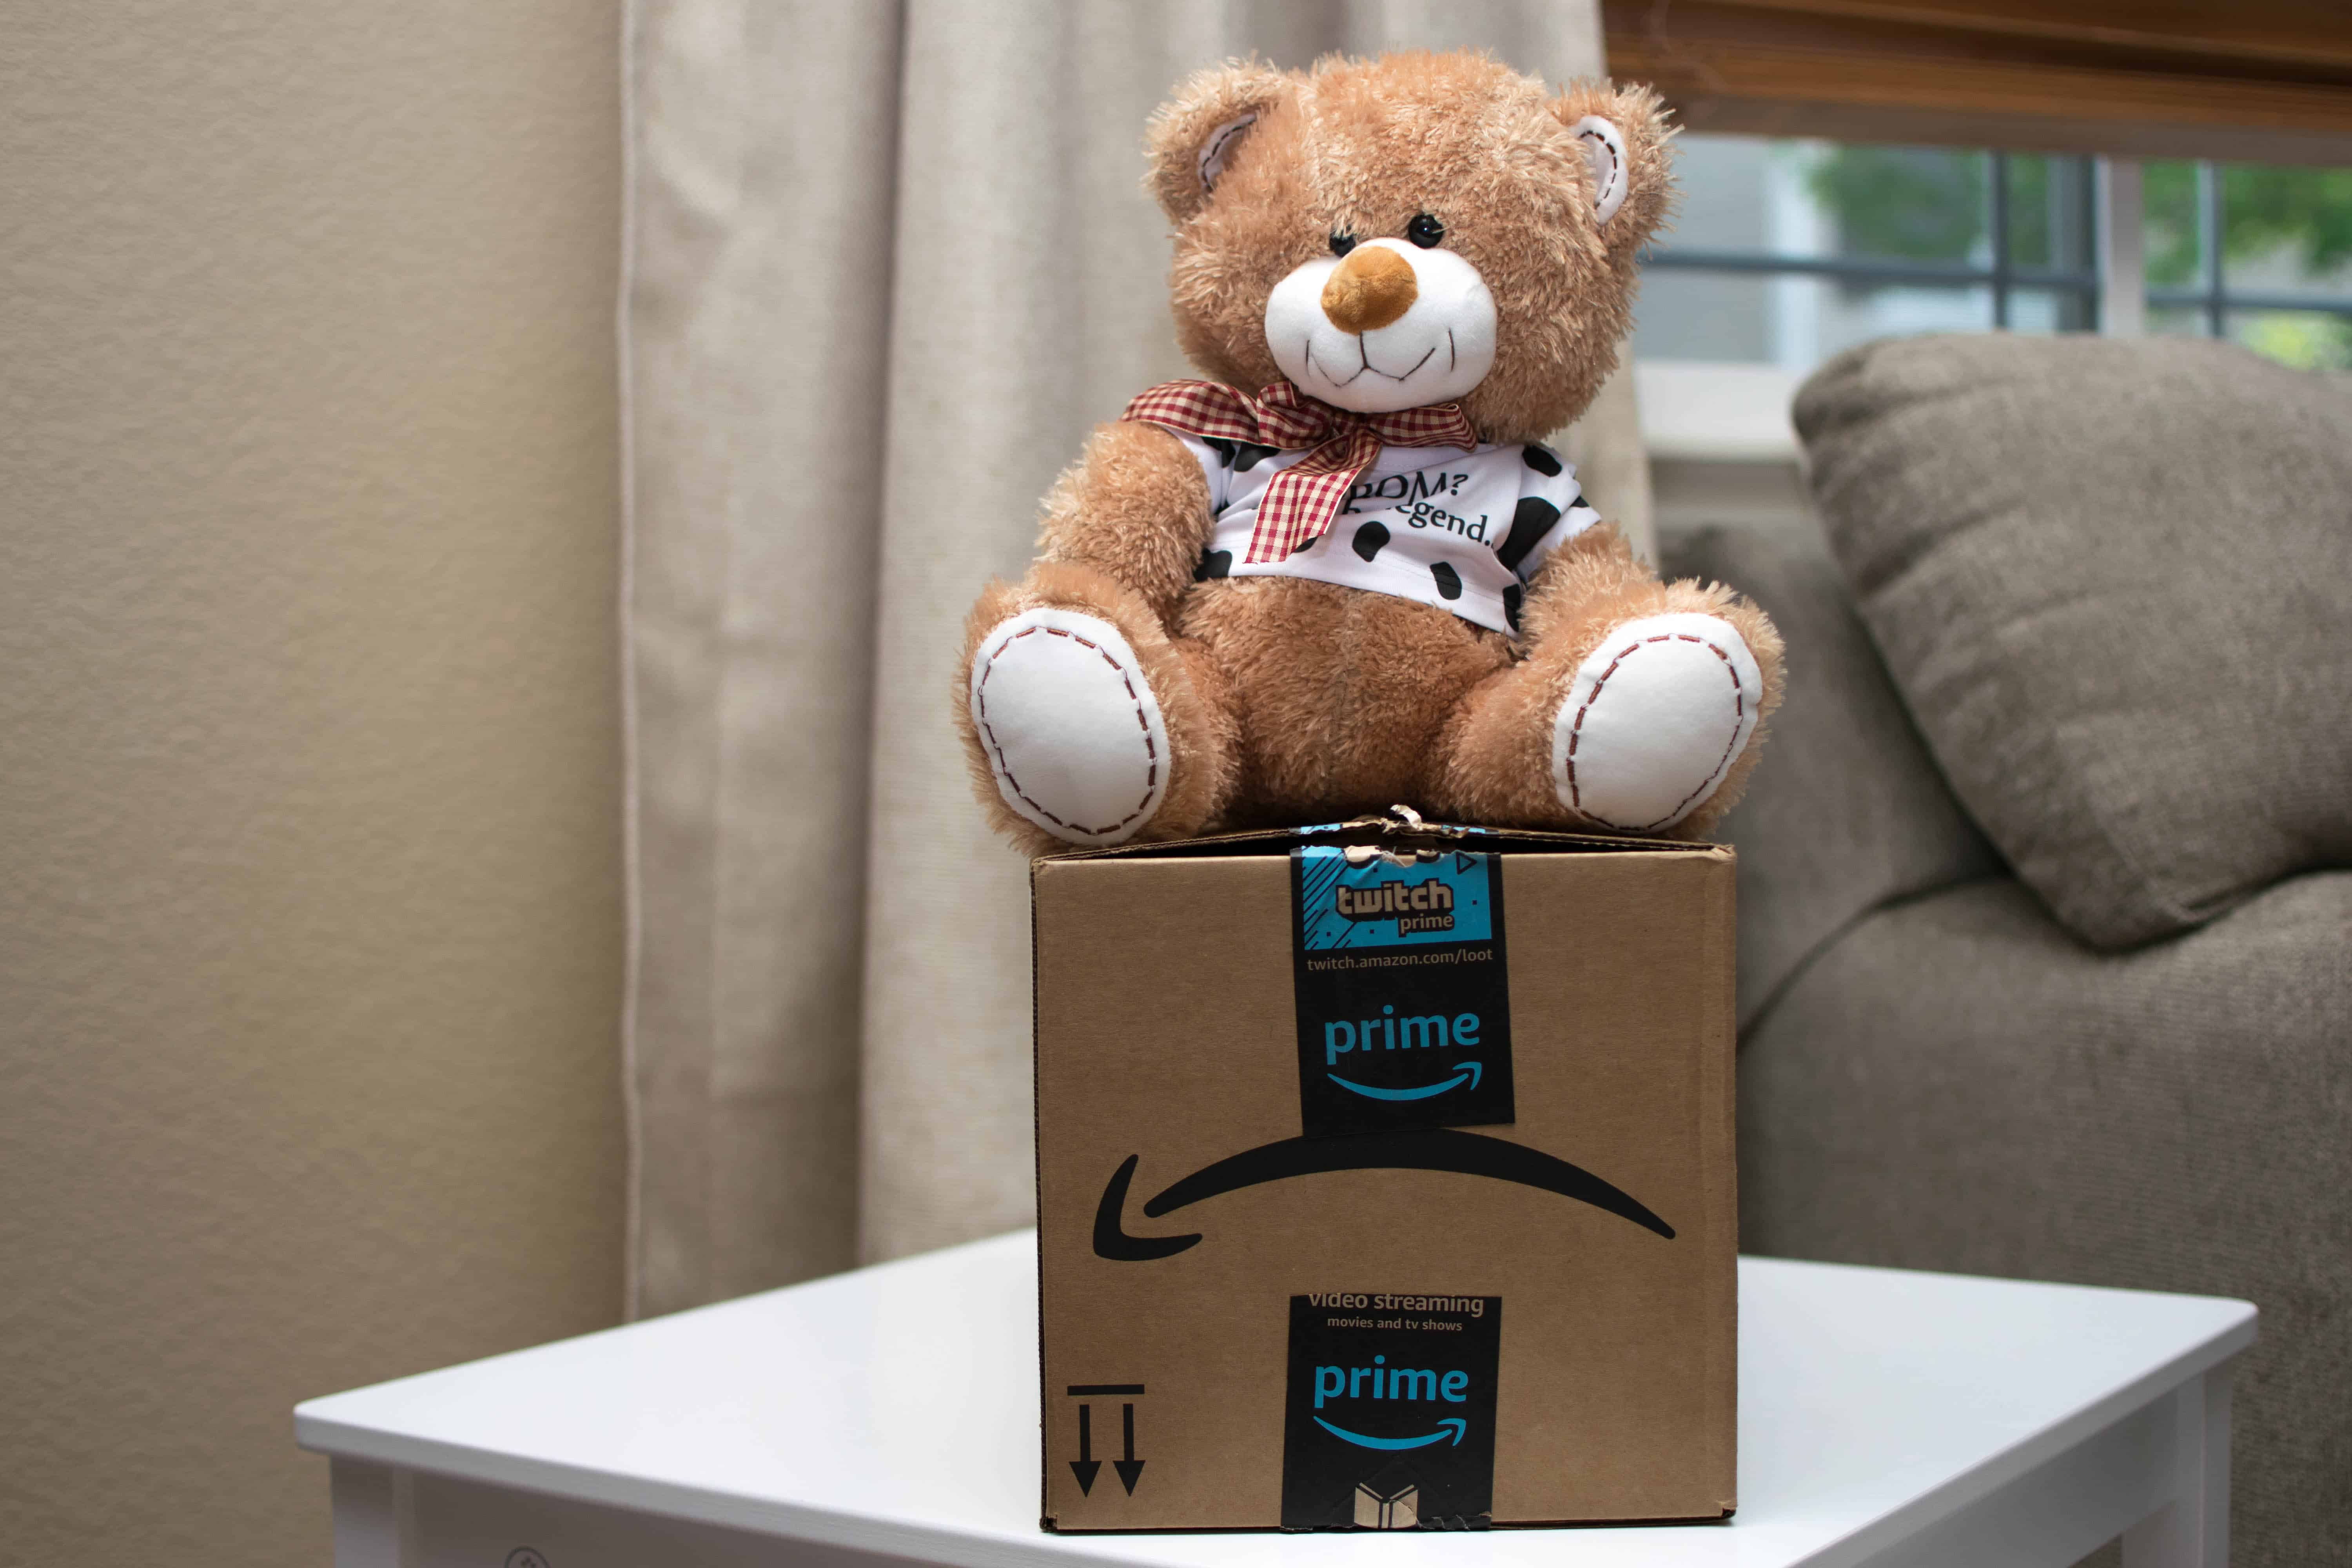 promposal bear on amazon prime box